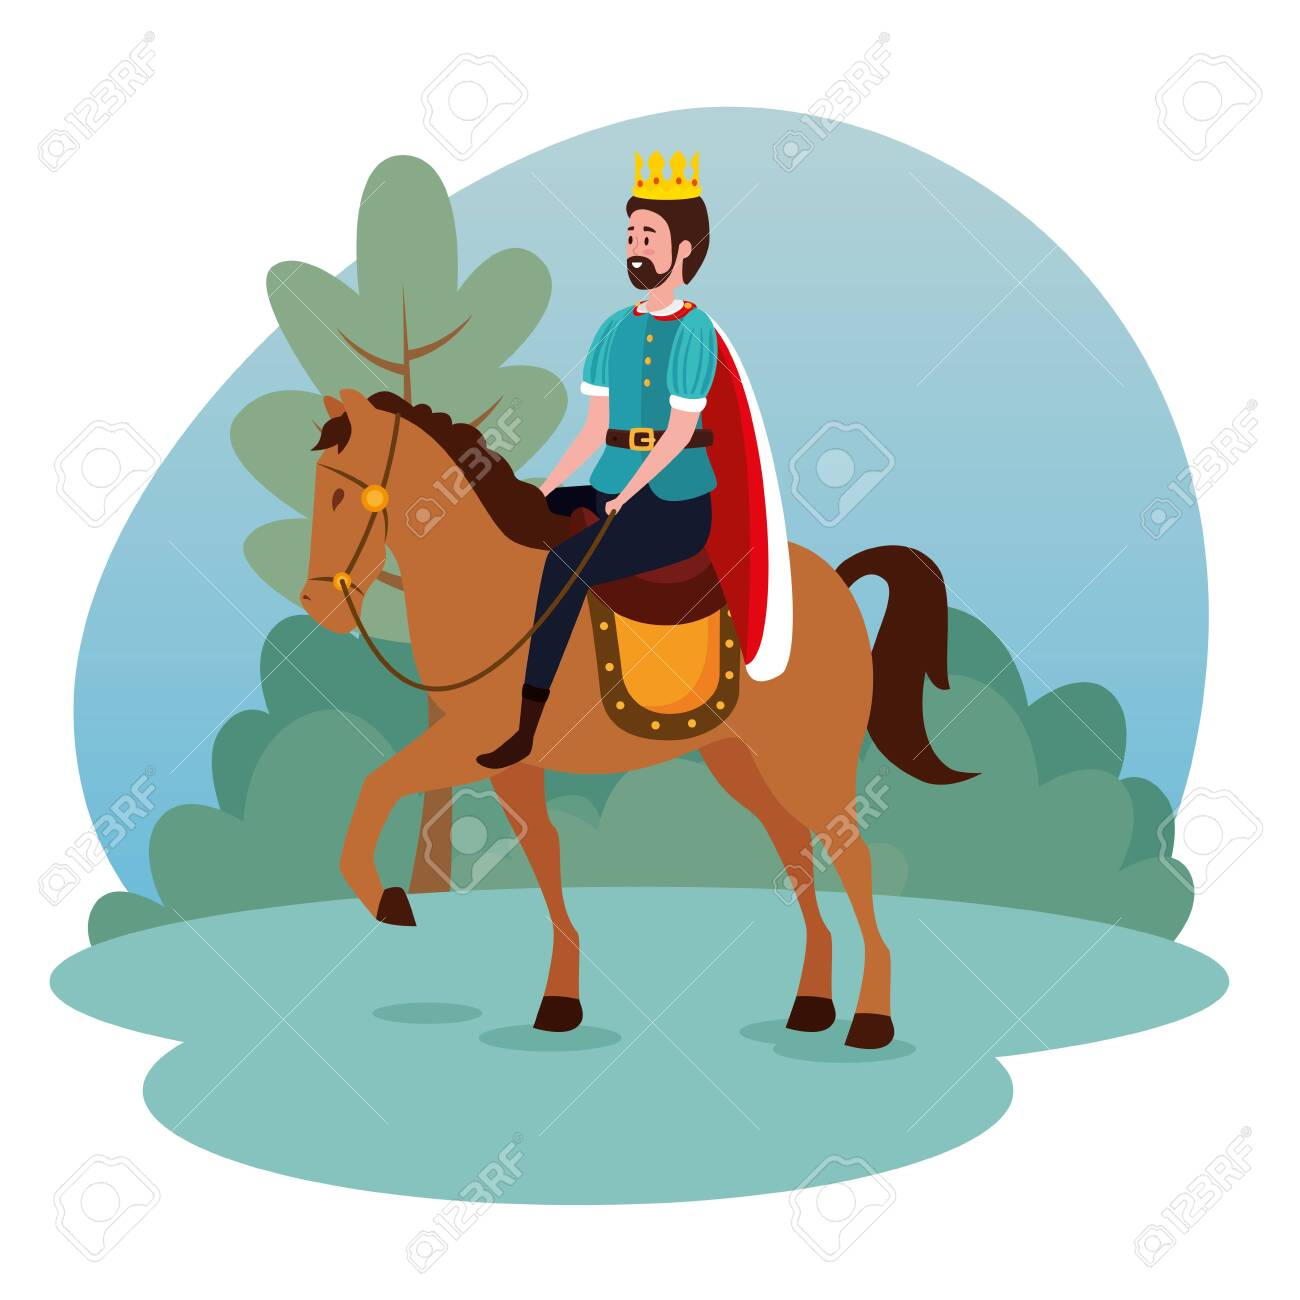 Man King With Crown And Suit Riding Horse To Tale Character Vector Illustration Ilustraciones Vectoriales Clip Art Vectorizado Libre De Derechos Image 135390010